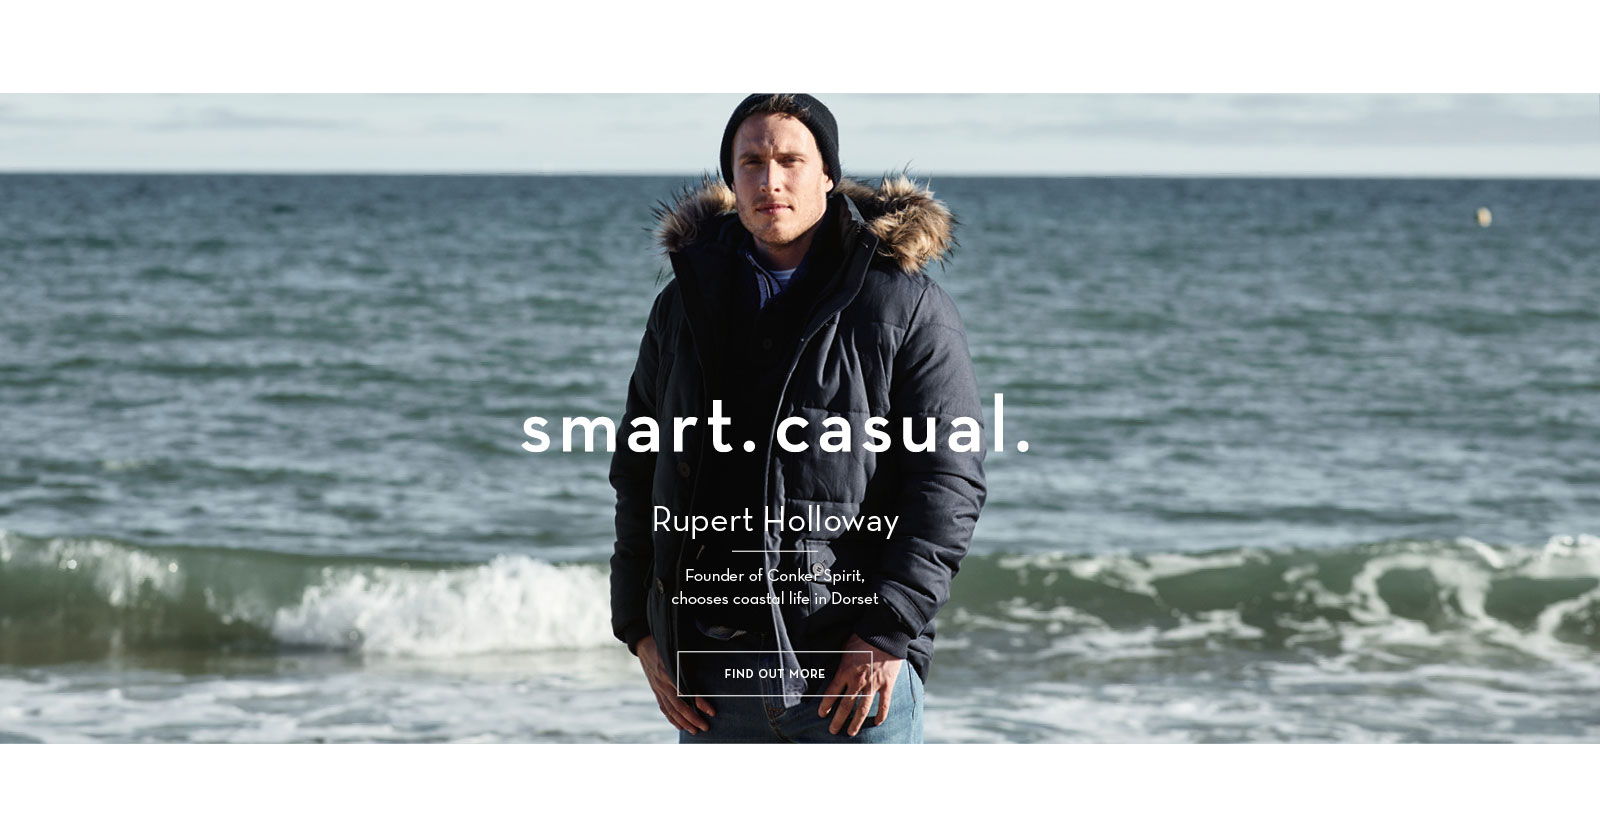 smart.casual. Rupert Holloway